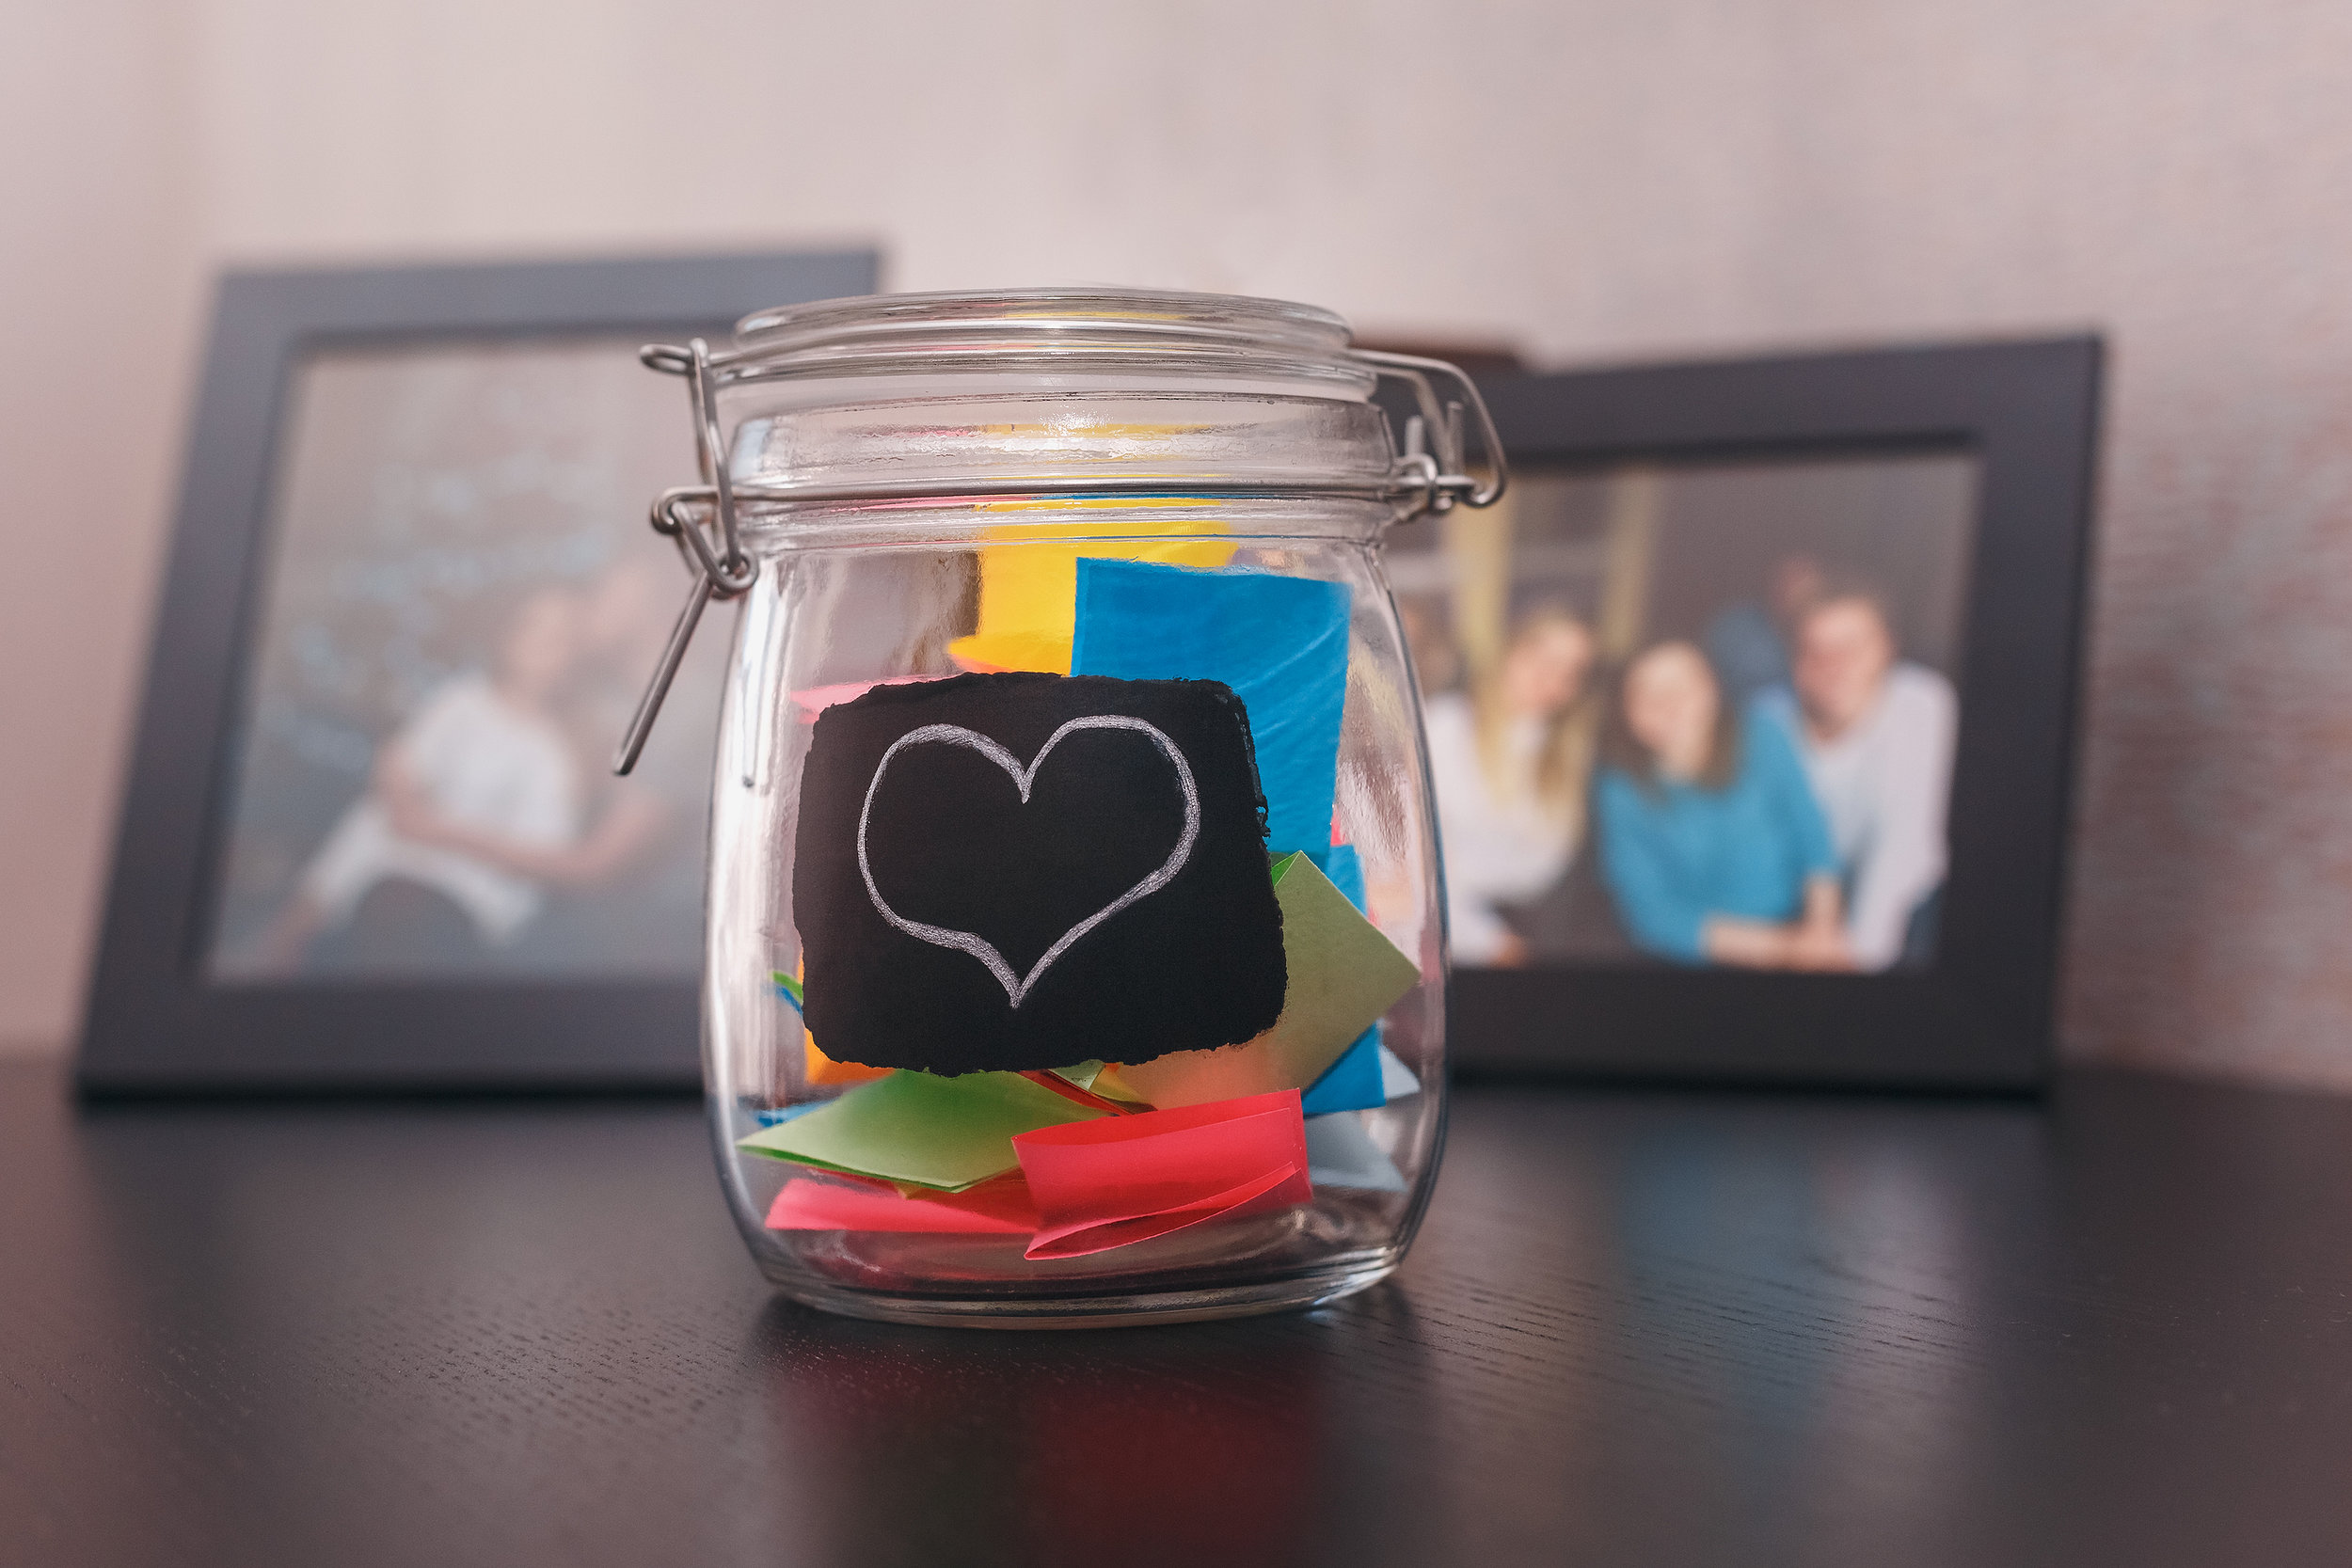 Create a grateful jar to write down things you're grateful for. On bad days, read some of the notes to remind you.